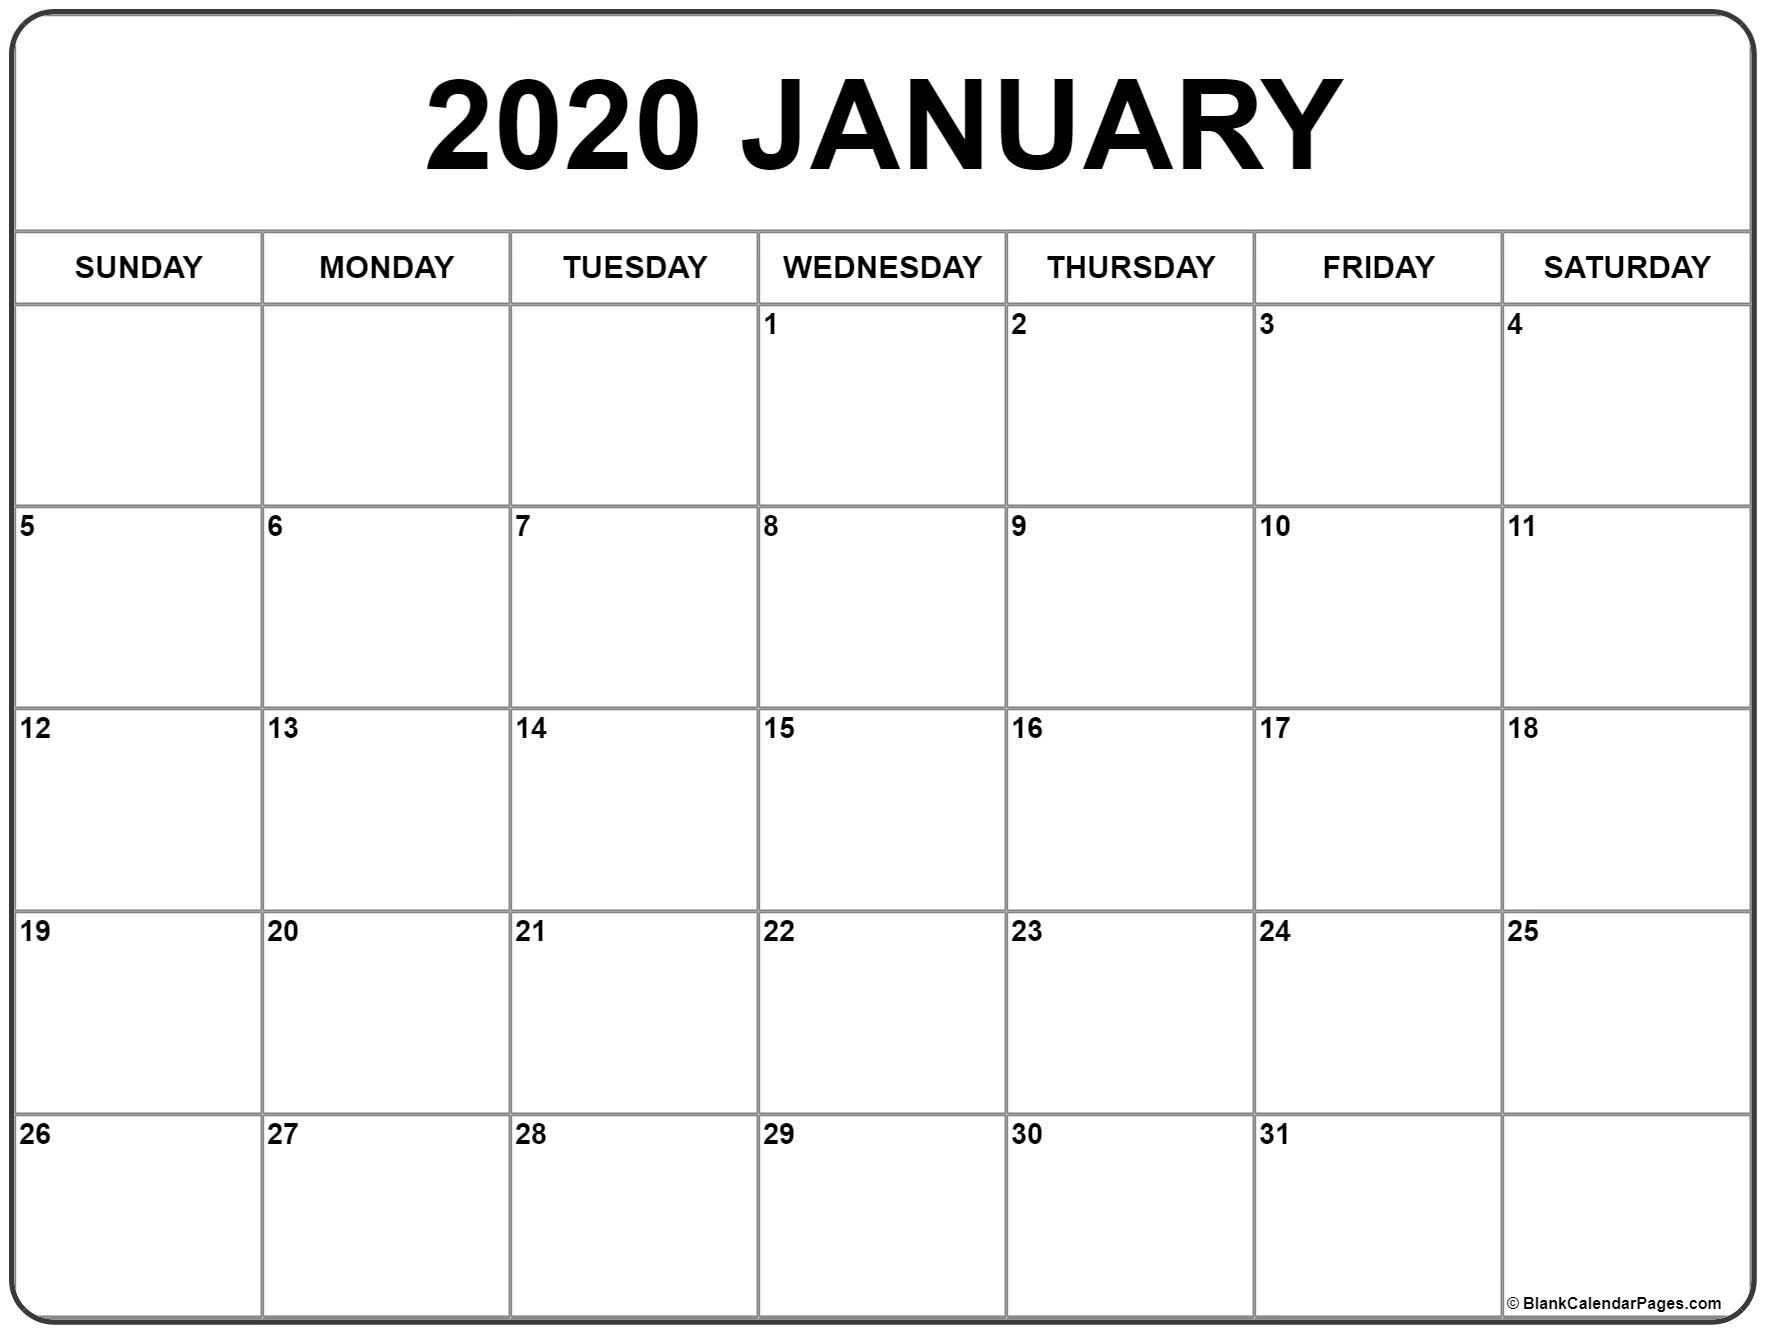 January 2020 Calendar | Free Printable Monthly Calendars-Free Printable January 2020 Calendar Template